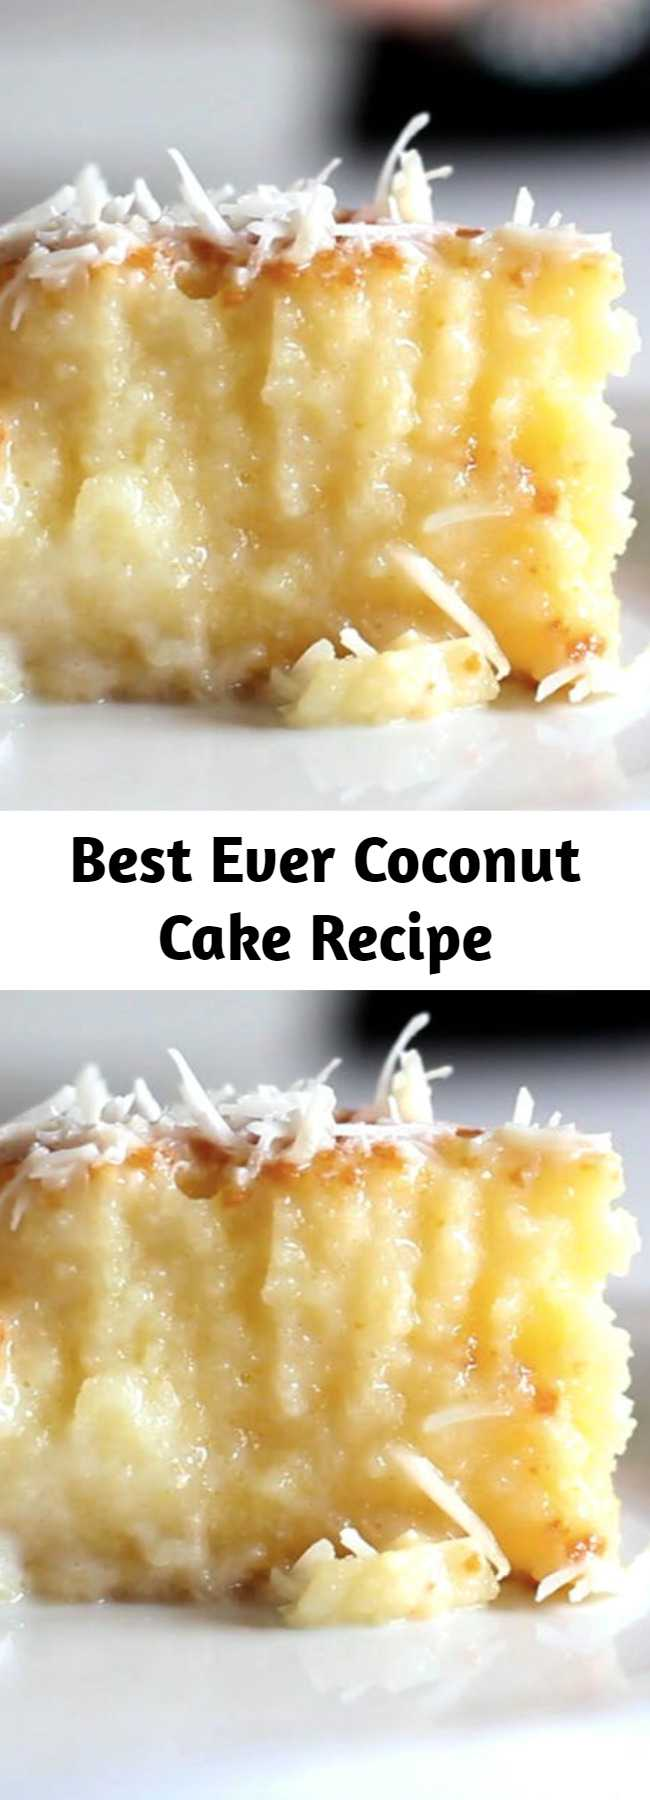 Best Ever Coconut Cake Recipe - A cake with a rich coconut base and grated coconut topping.